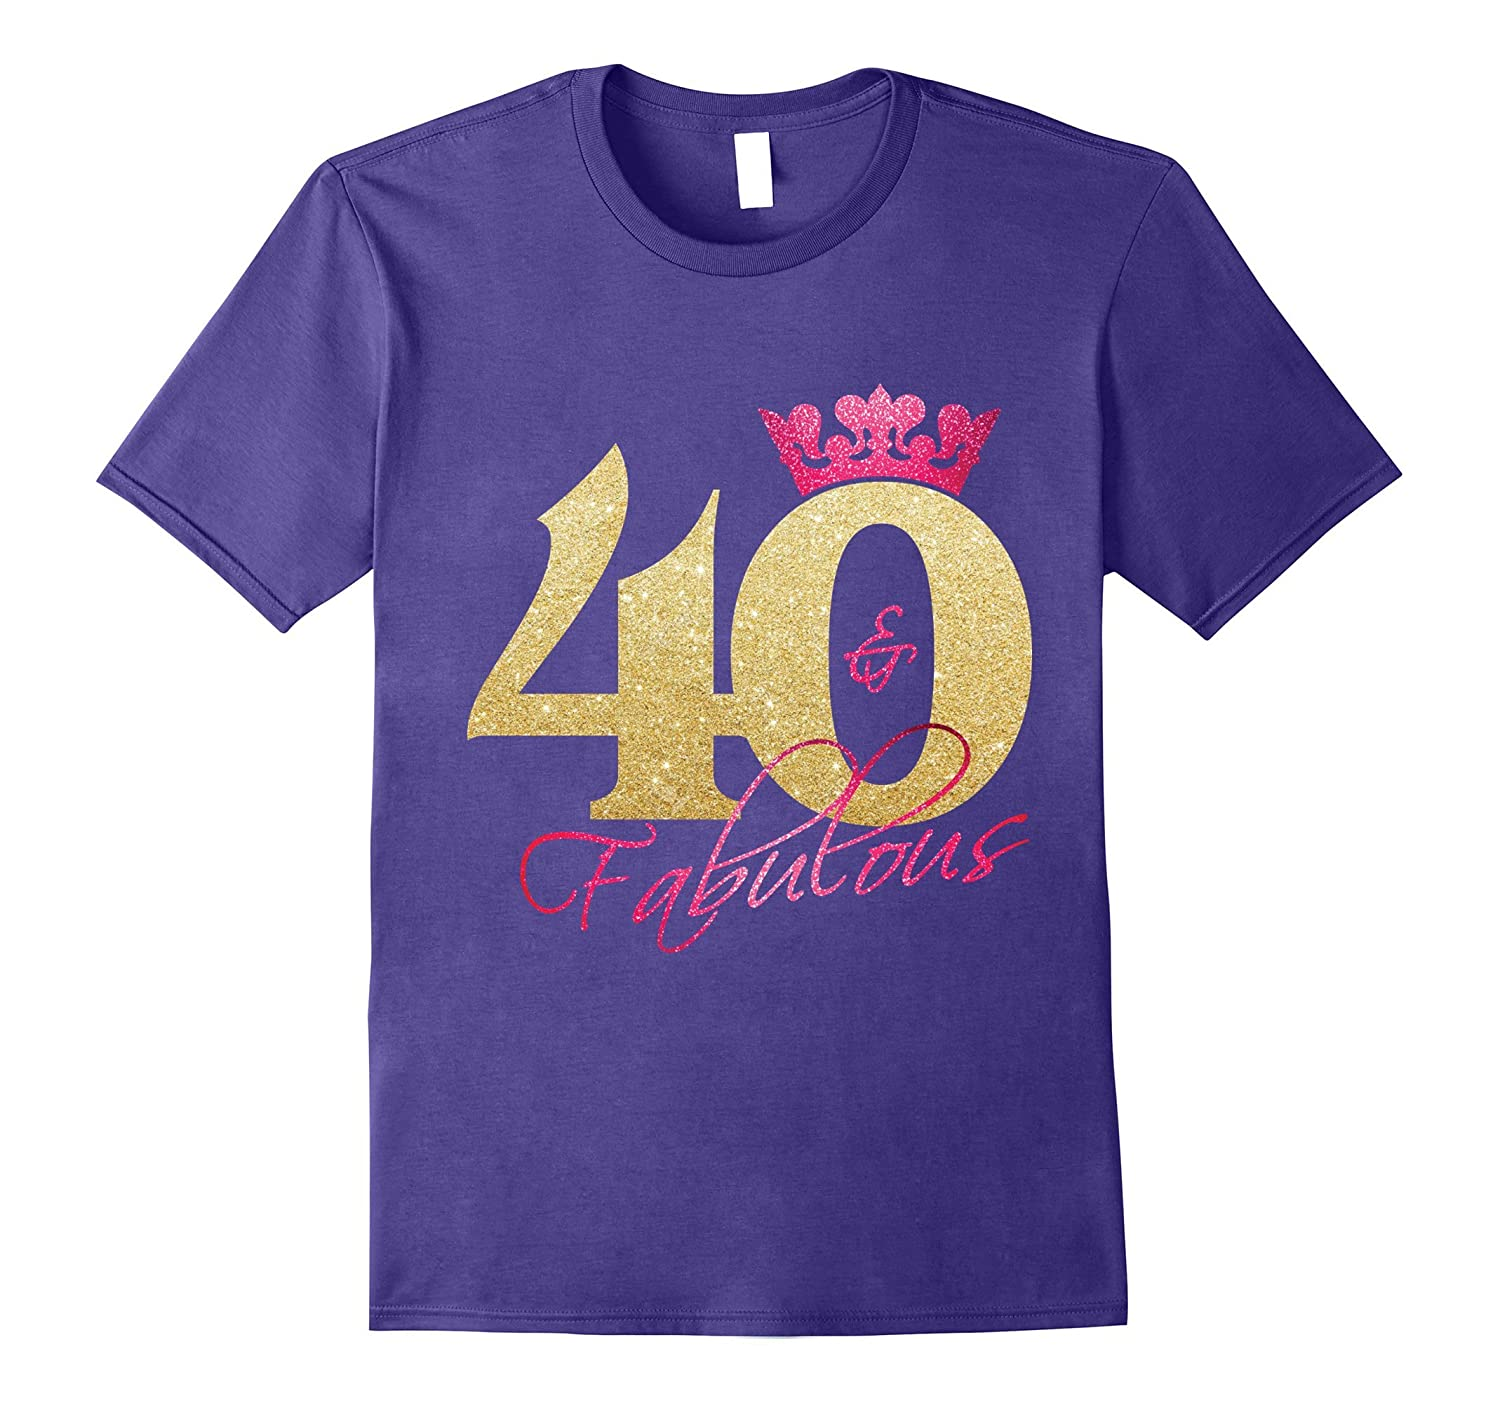 40 and fabulous shirt - 40th birthday party shirts-ah my shirt one gift